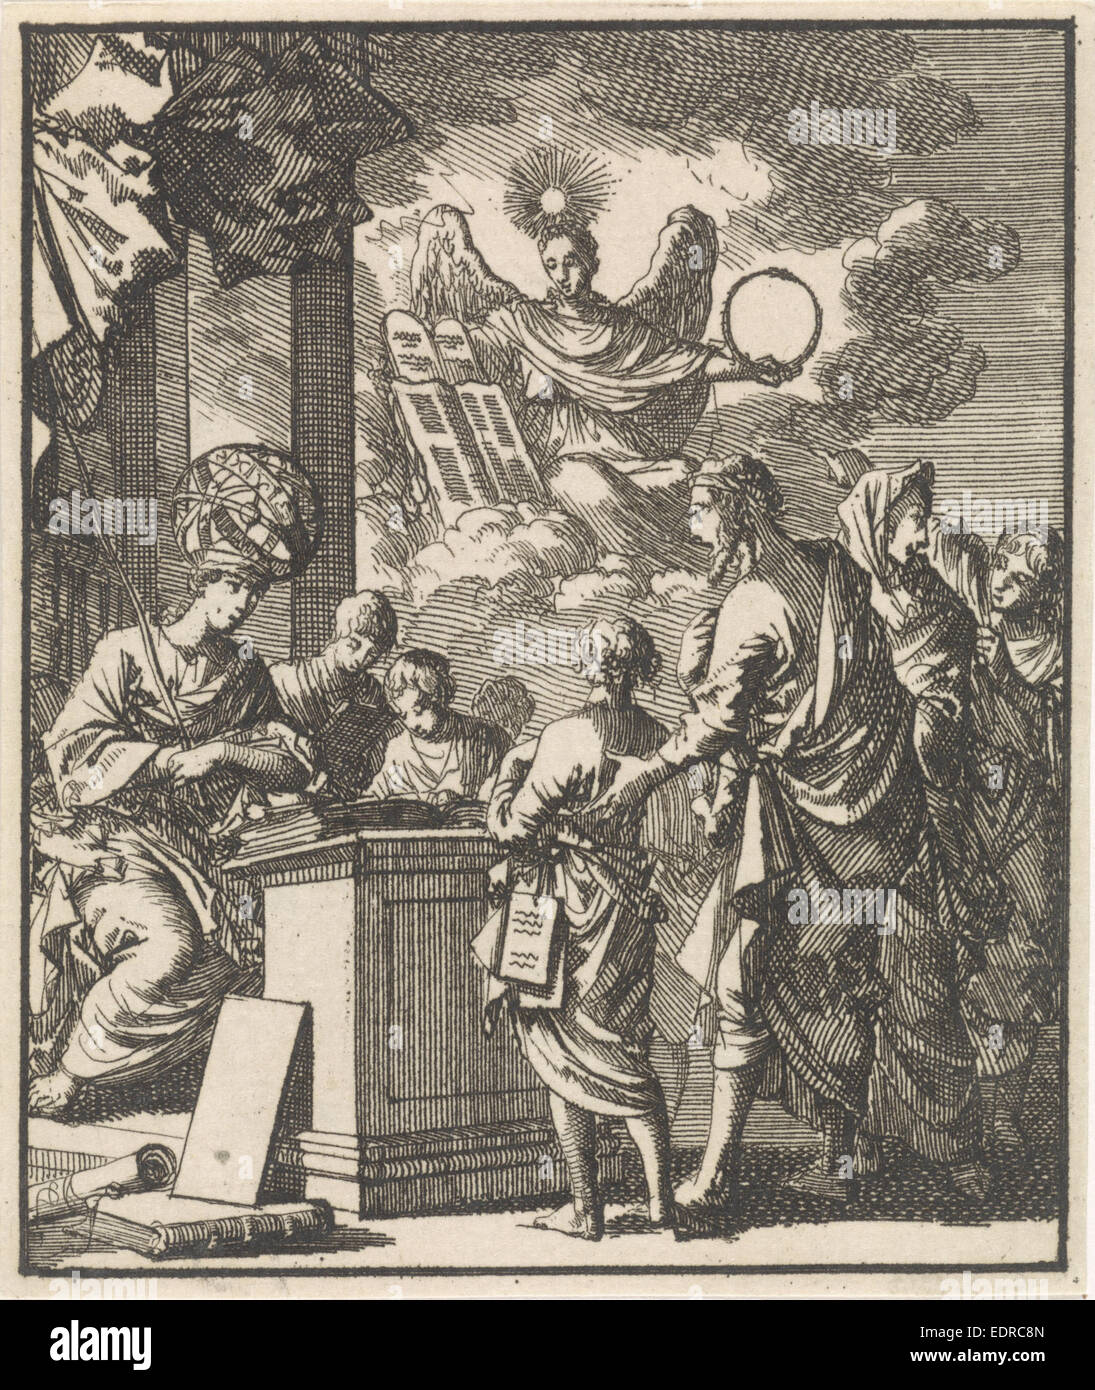 Science and Divine Wisdom, Jan Luyken, 1699 - Stock Image